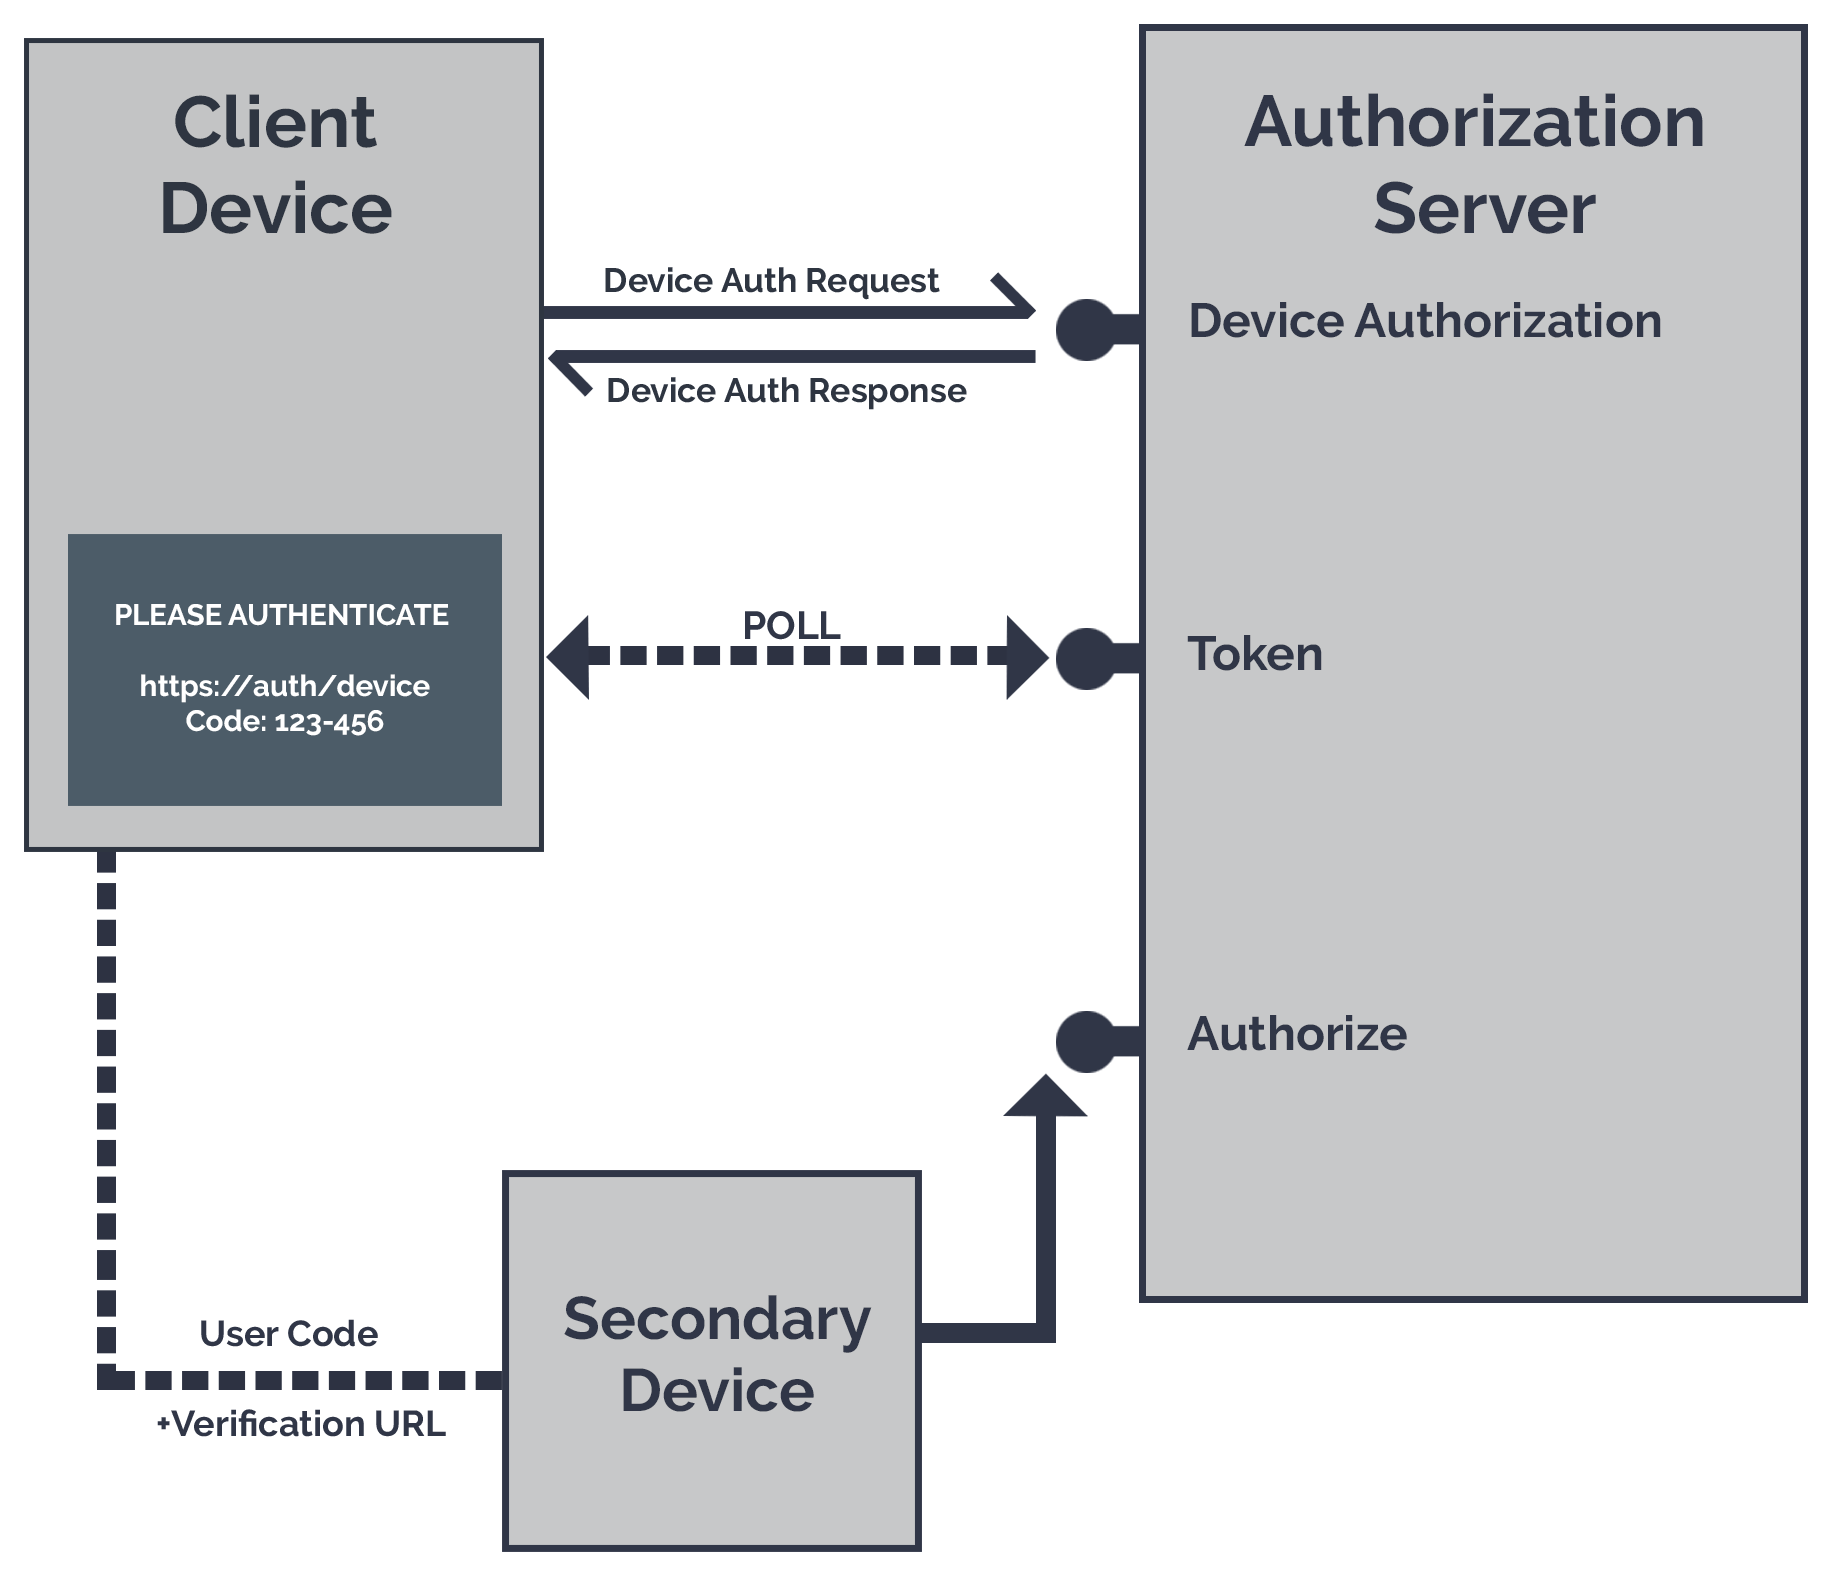 A diagram showing the OAuth device flow process